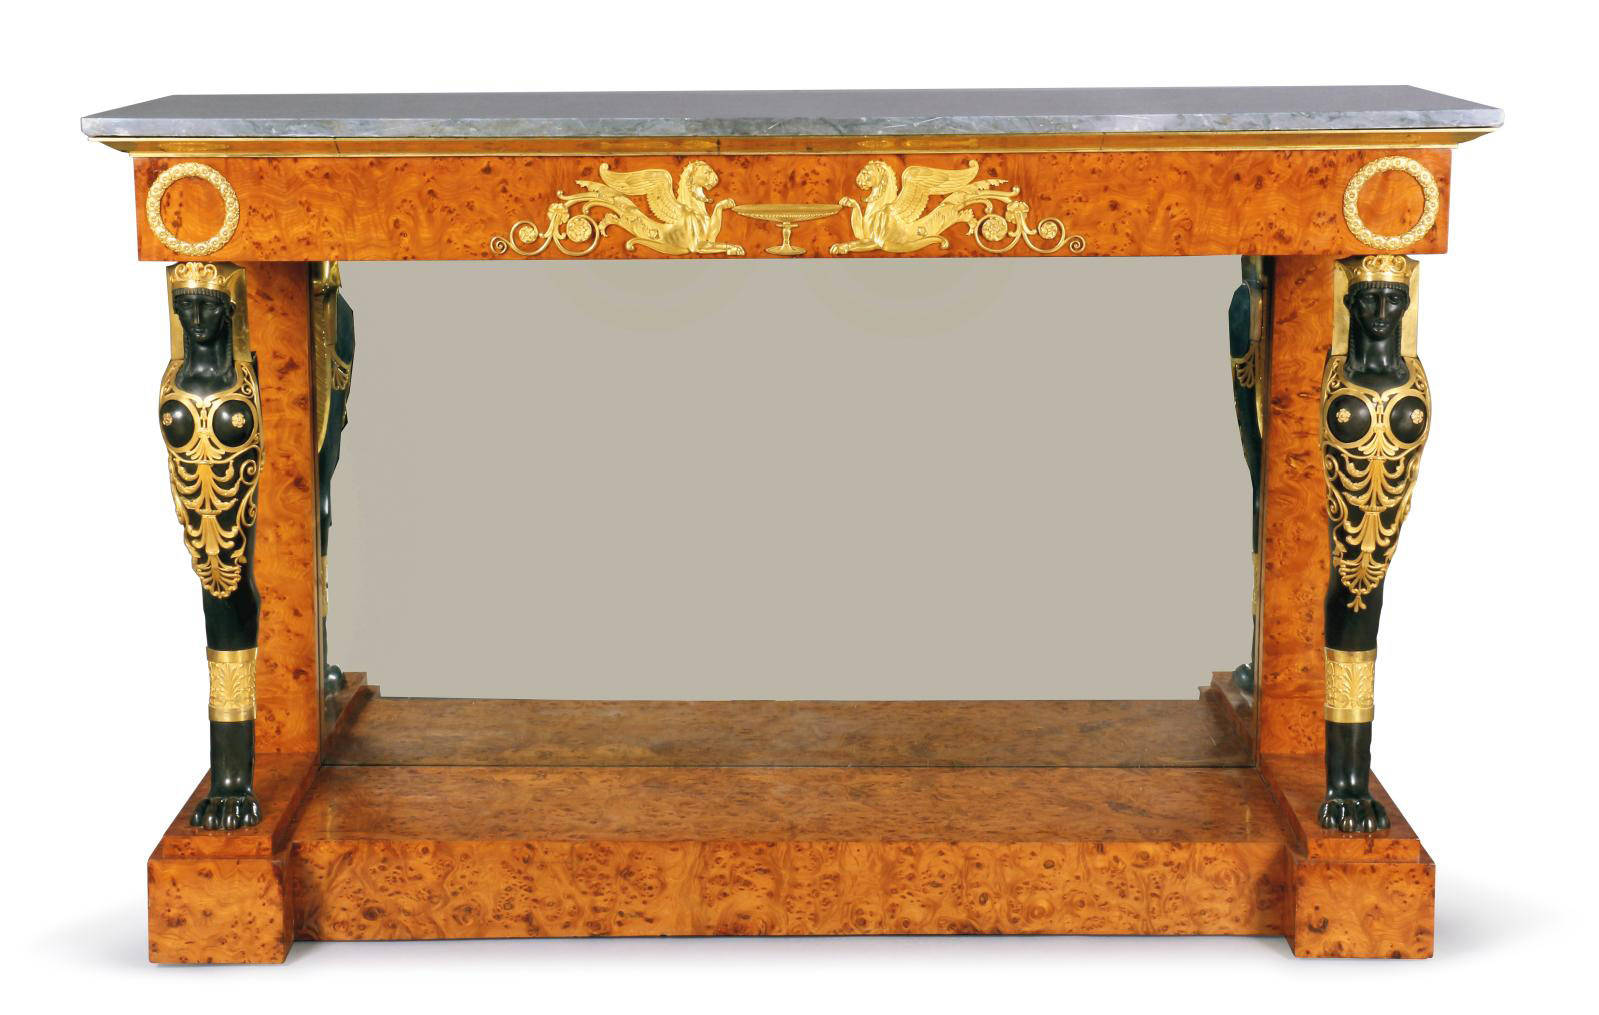 Console, from a series of four placed in the grand salon of the empress in the palace of Saint-Cloud, c. 1800-1802, elm, gilded and patina